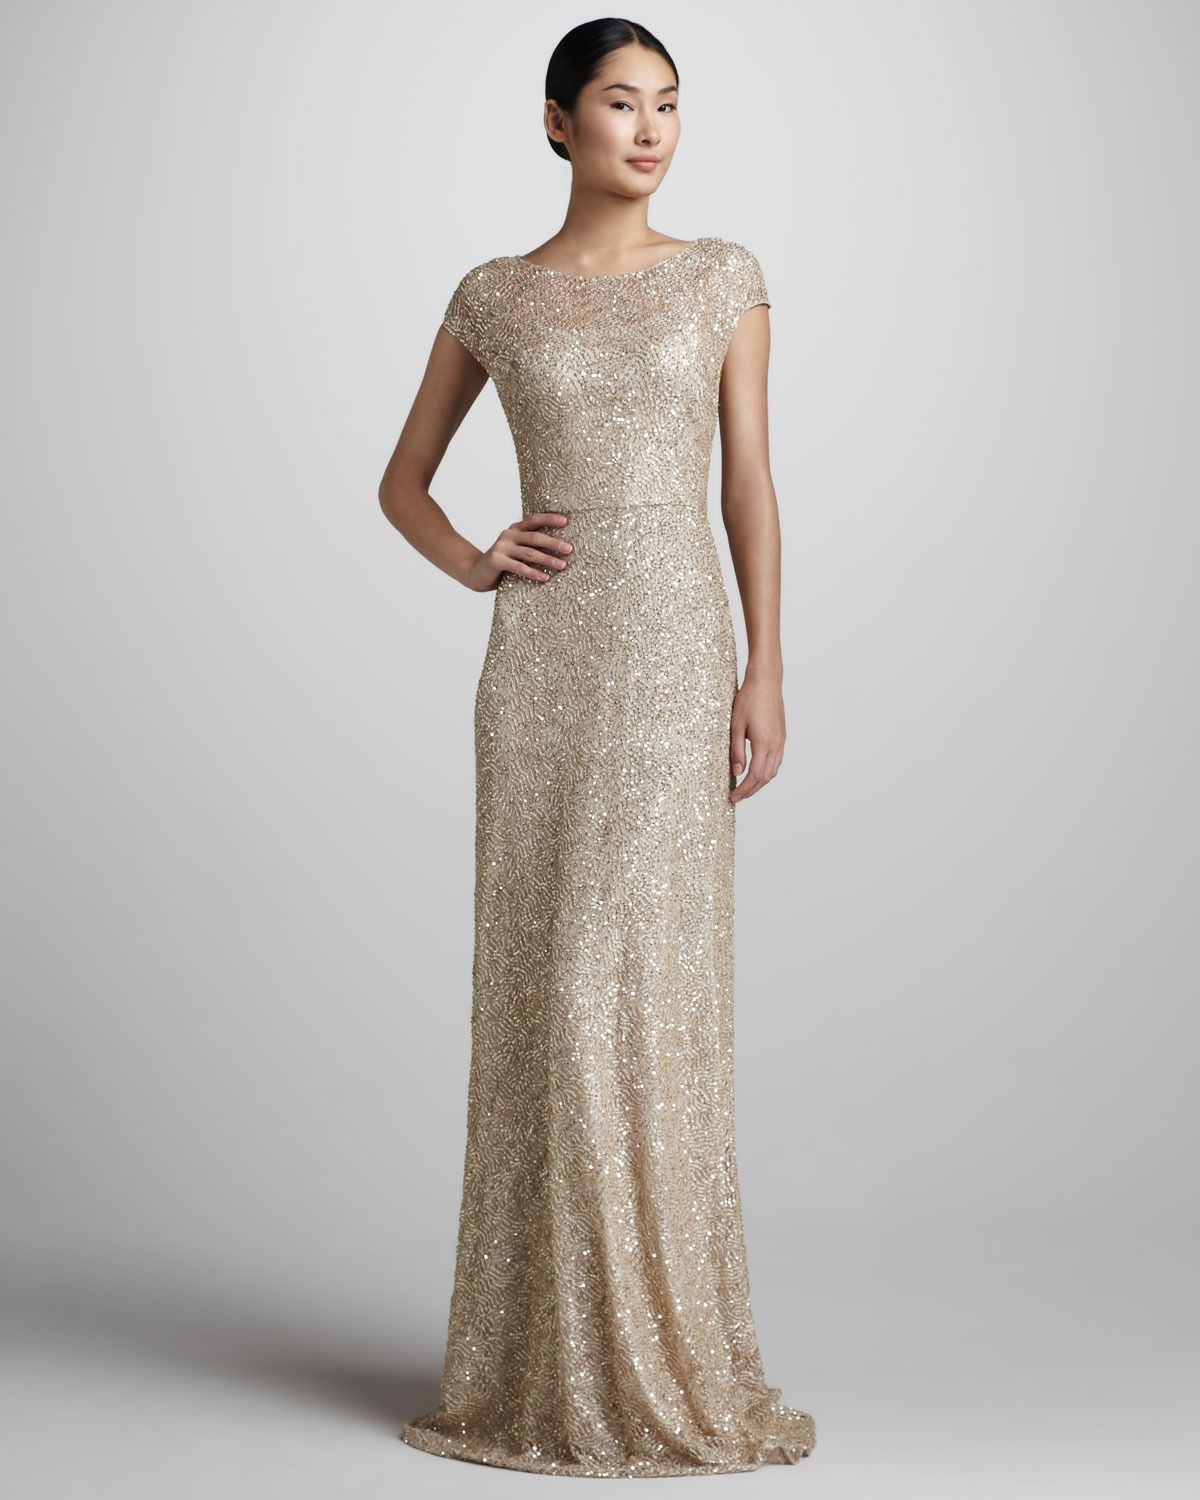 Sequined capsleeve gown david meister signature flash sparkle